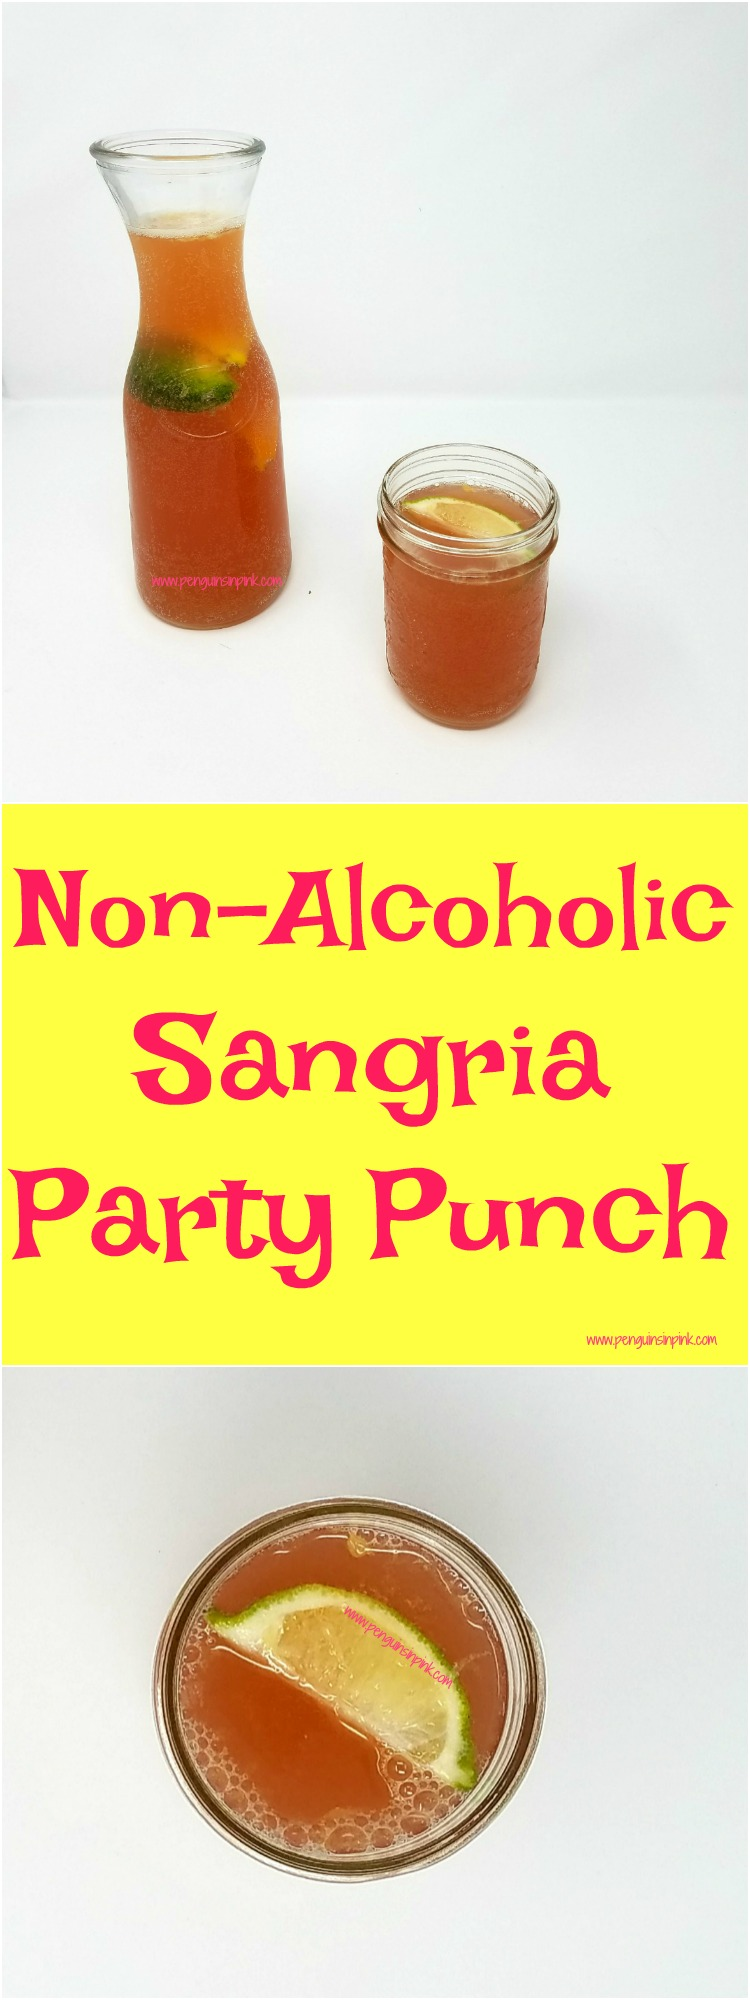 Non-alcoholic sangria party punch has become my go-to recipes for a party simply because it is one of the easiest and best non-alcoholic sangria recipes ever! This recipe makes a huge punch bowl of delicious non-alcoholic sangria that can be stored in the fridge for up to a week.